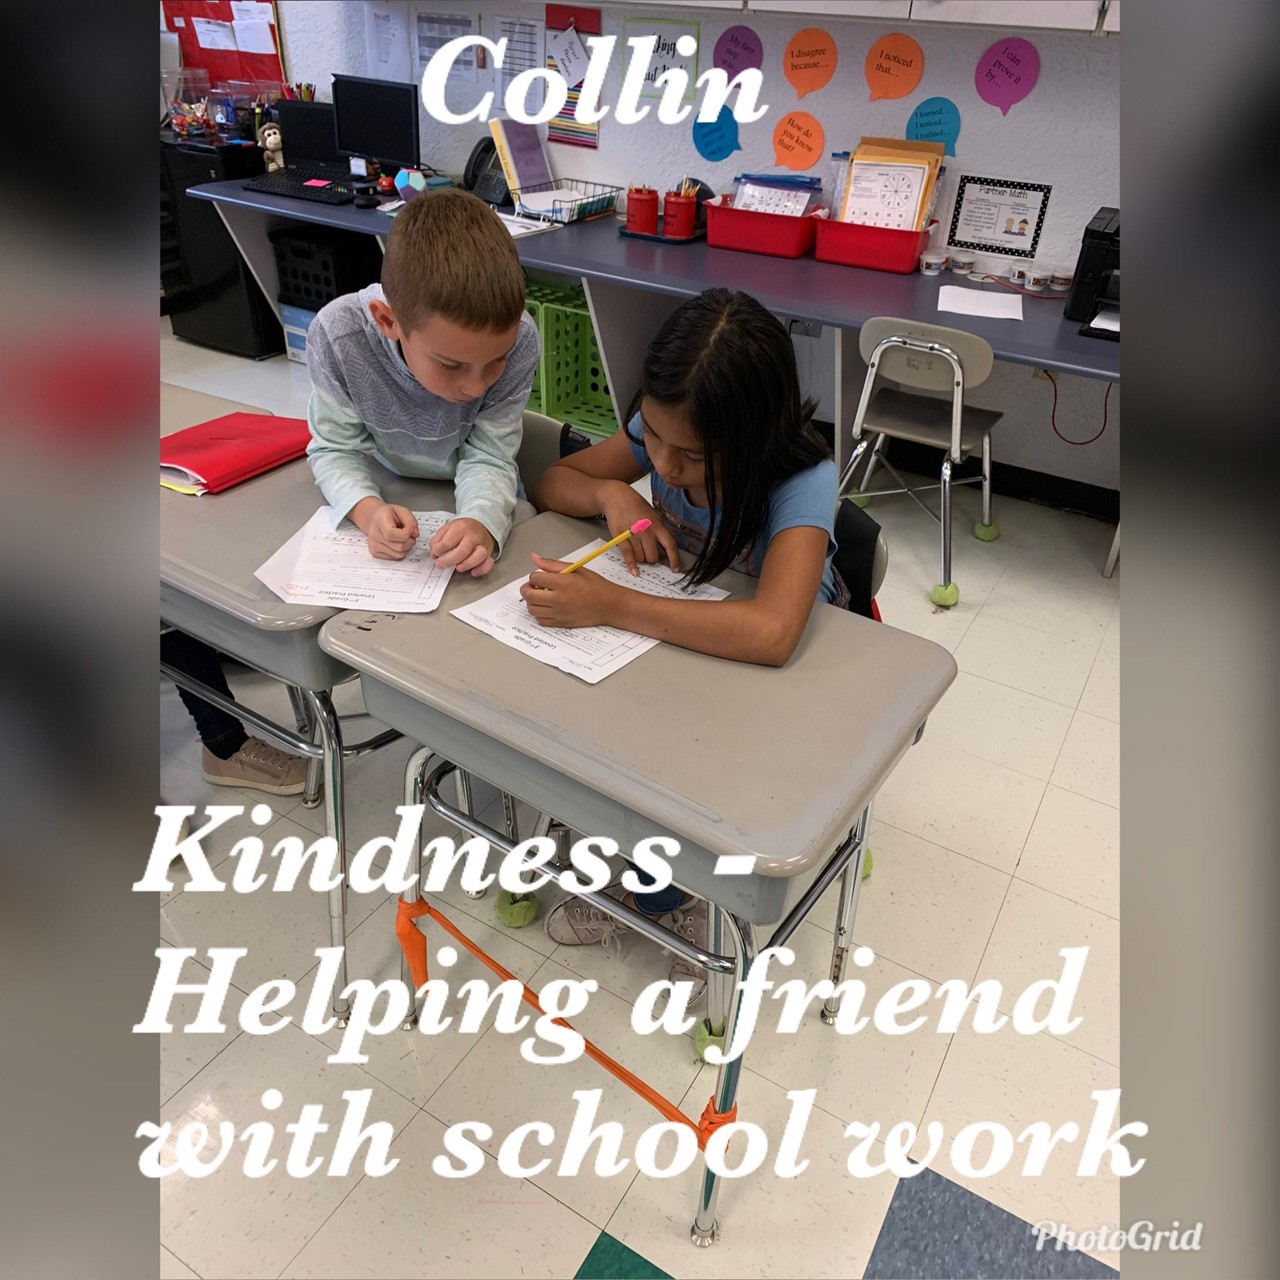 3rd grade student helping another student in the classroom!